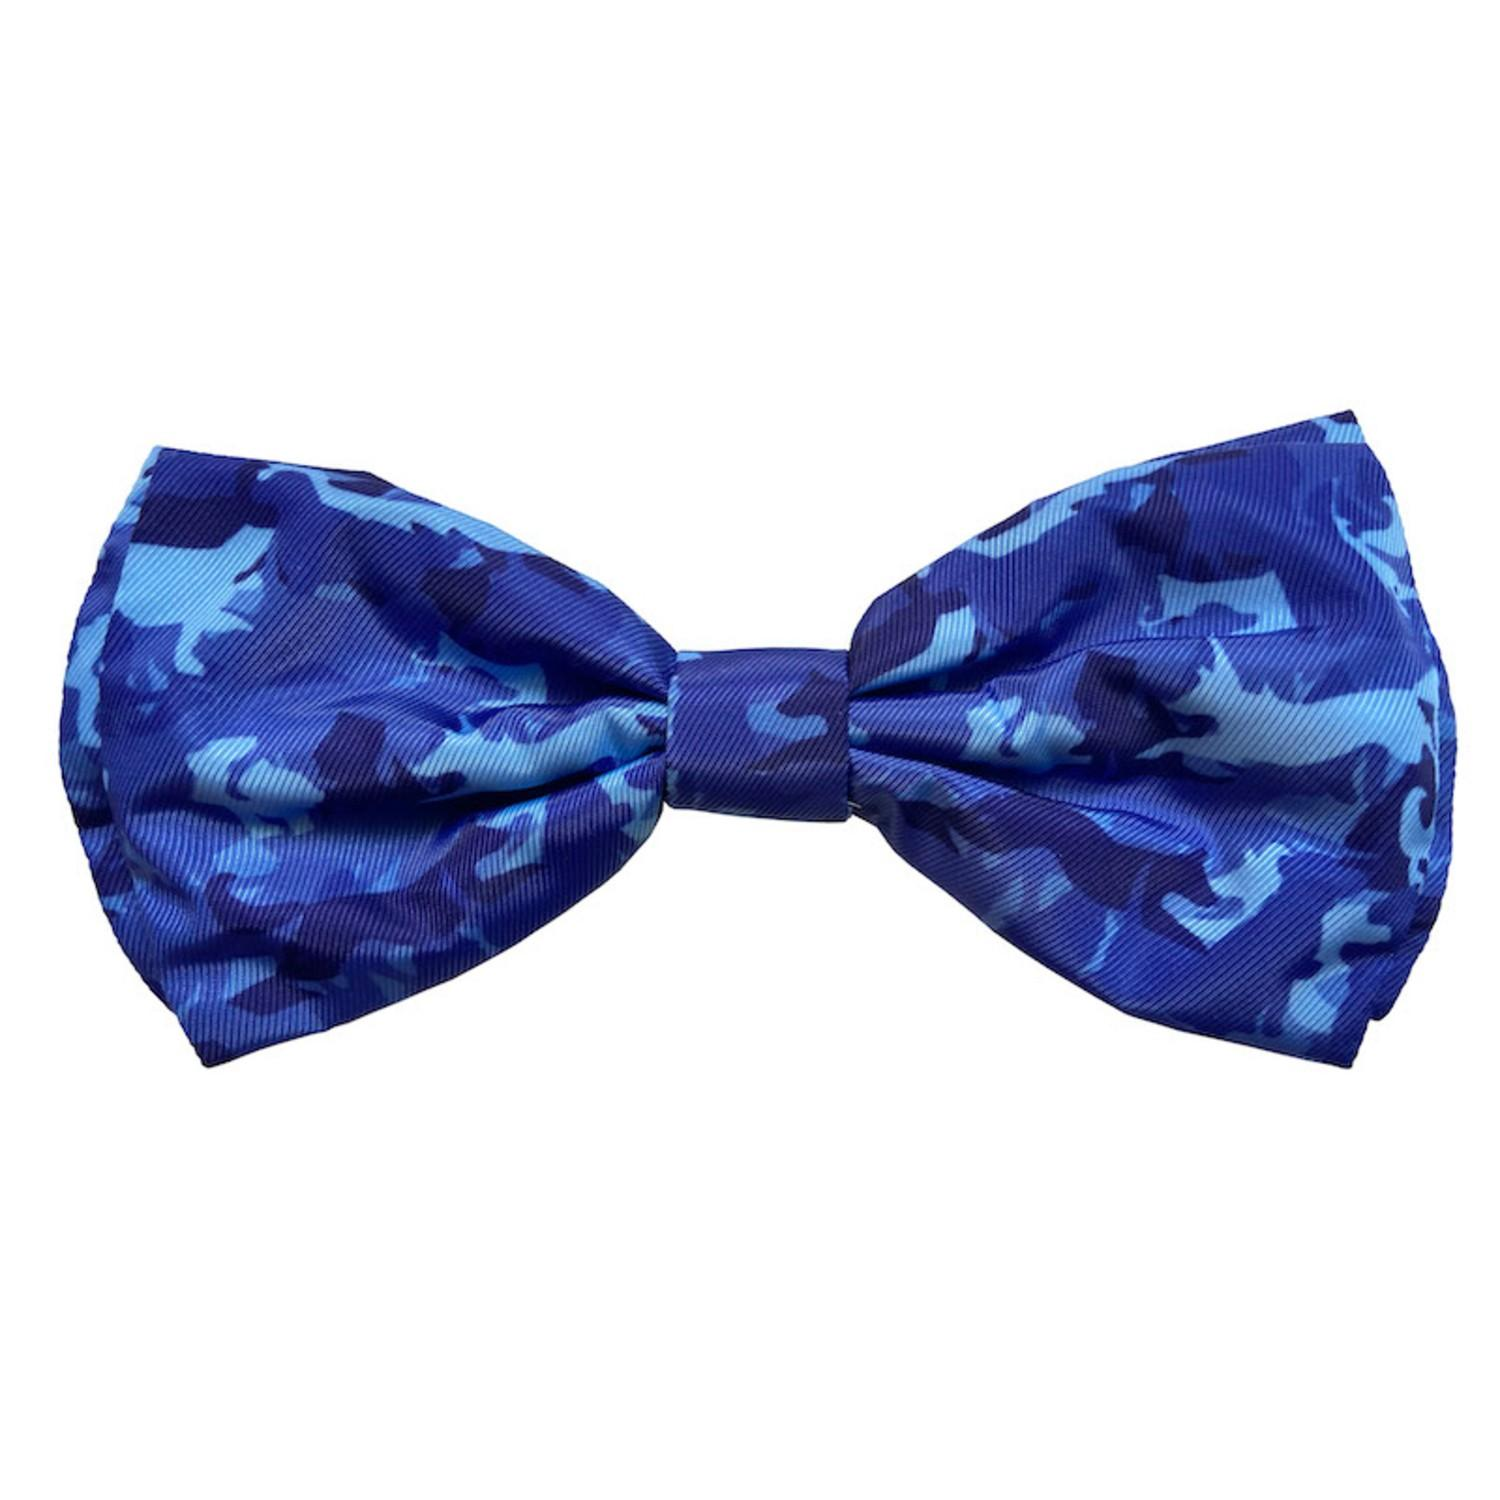 Huxley & Kent Dog and Cat Bow Tie Collar Attachment - Camo Dogs Blue